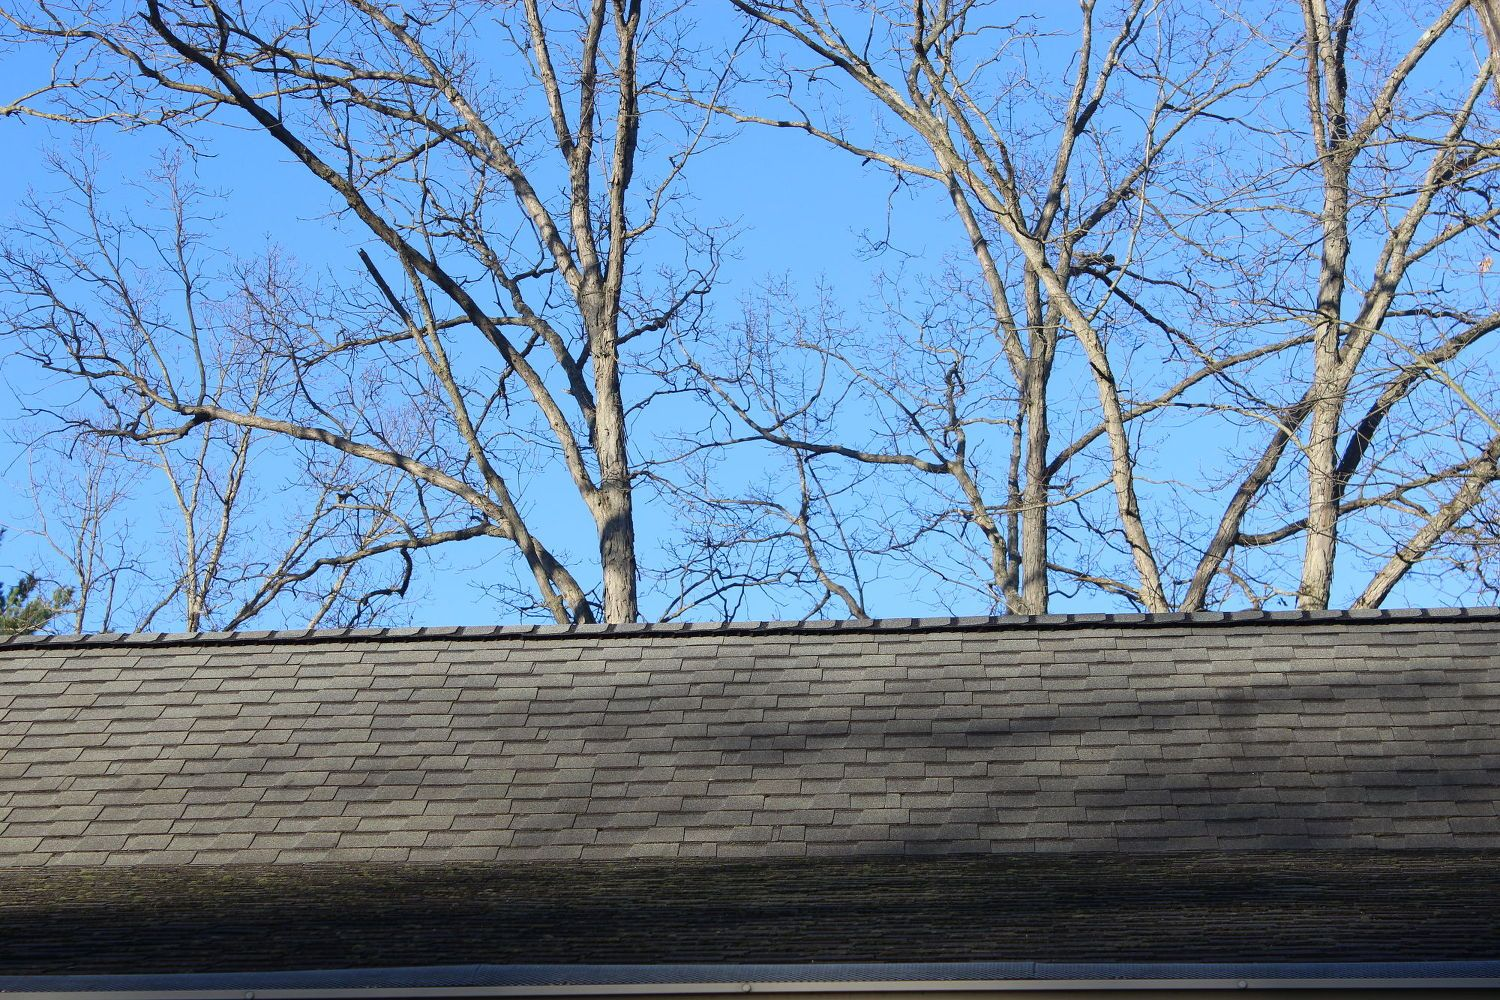 Zinc Strips On Roof To Help With Roof Moss Do They Work